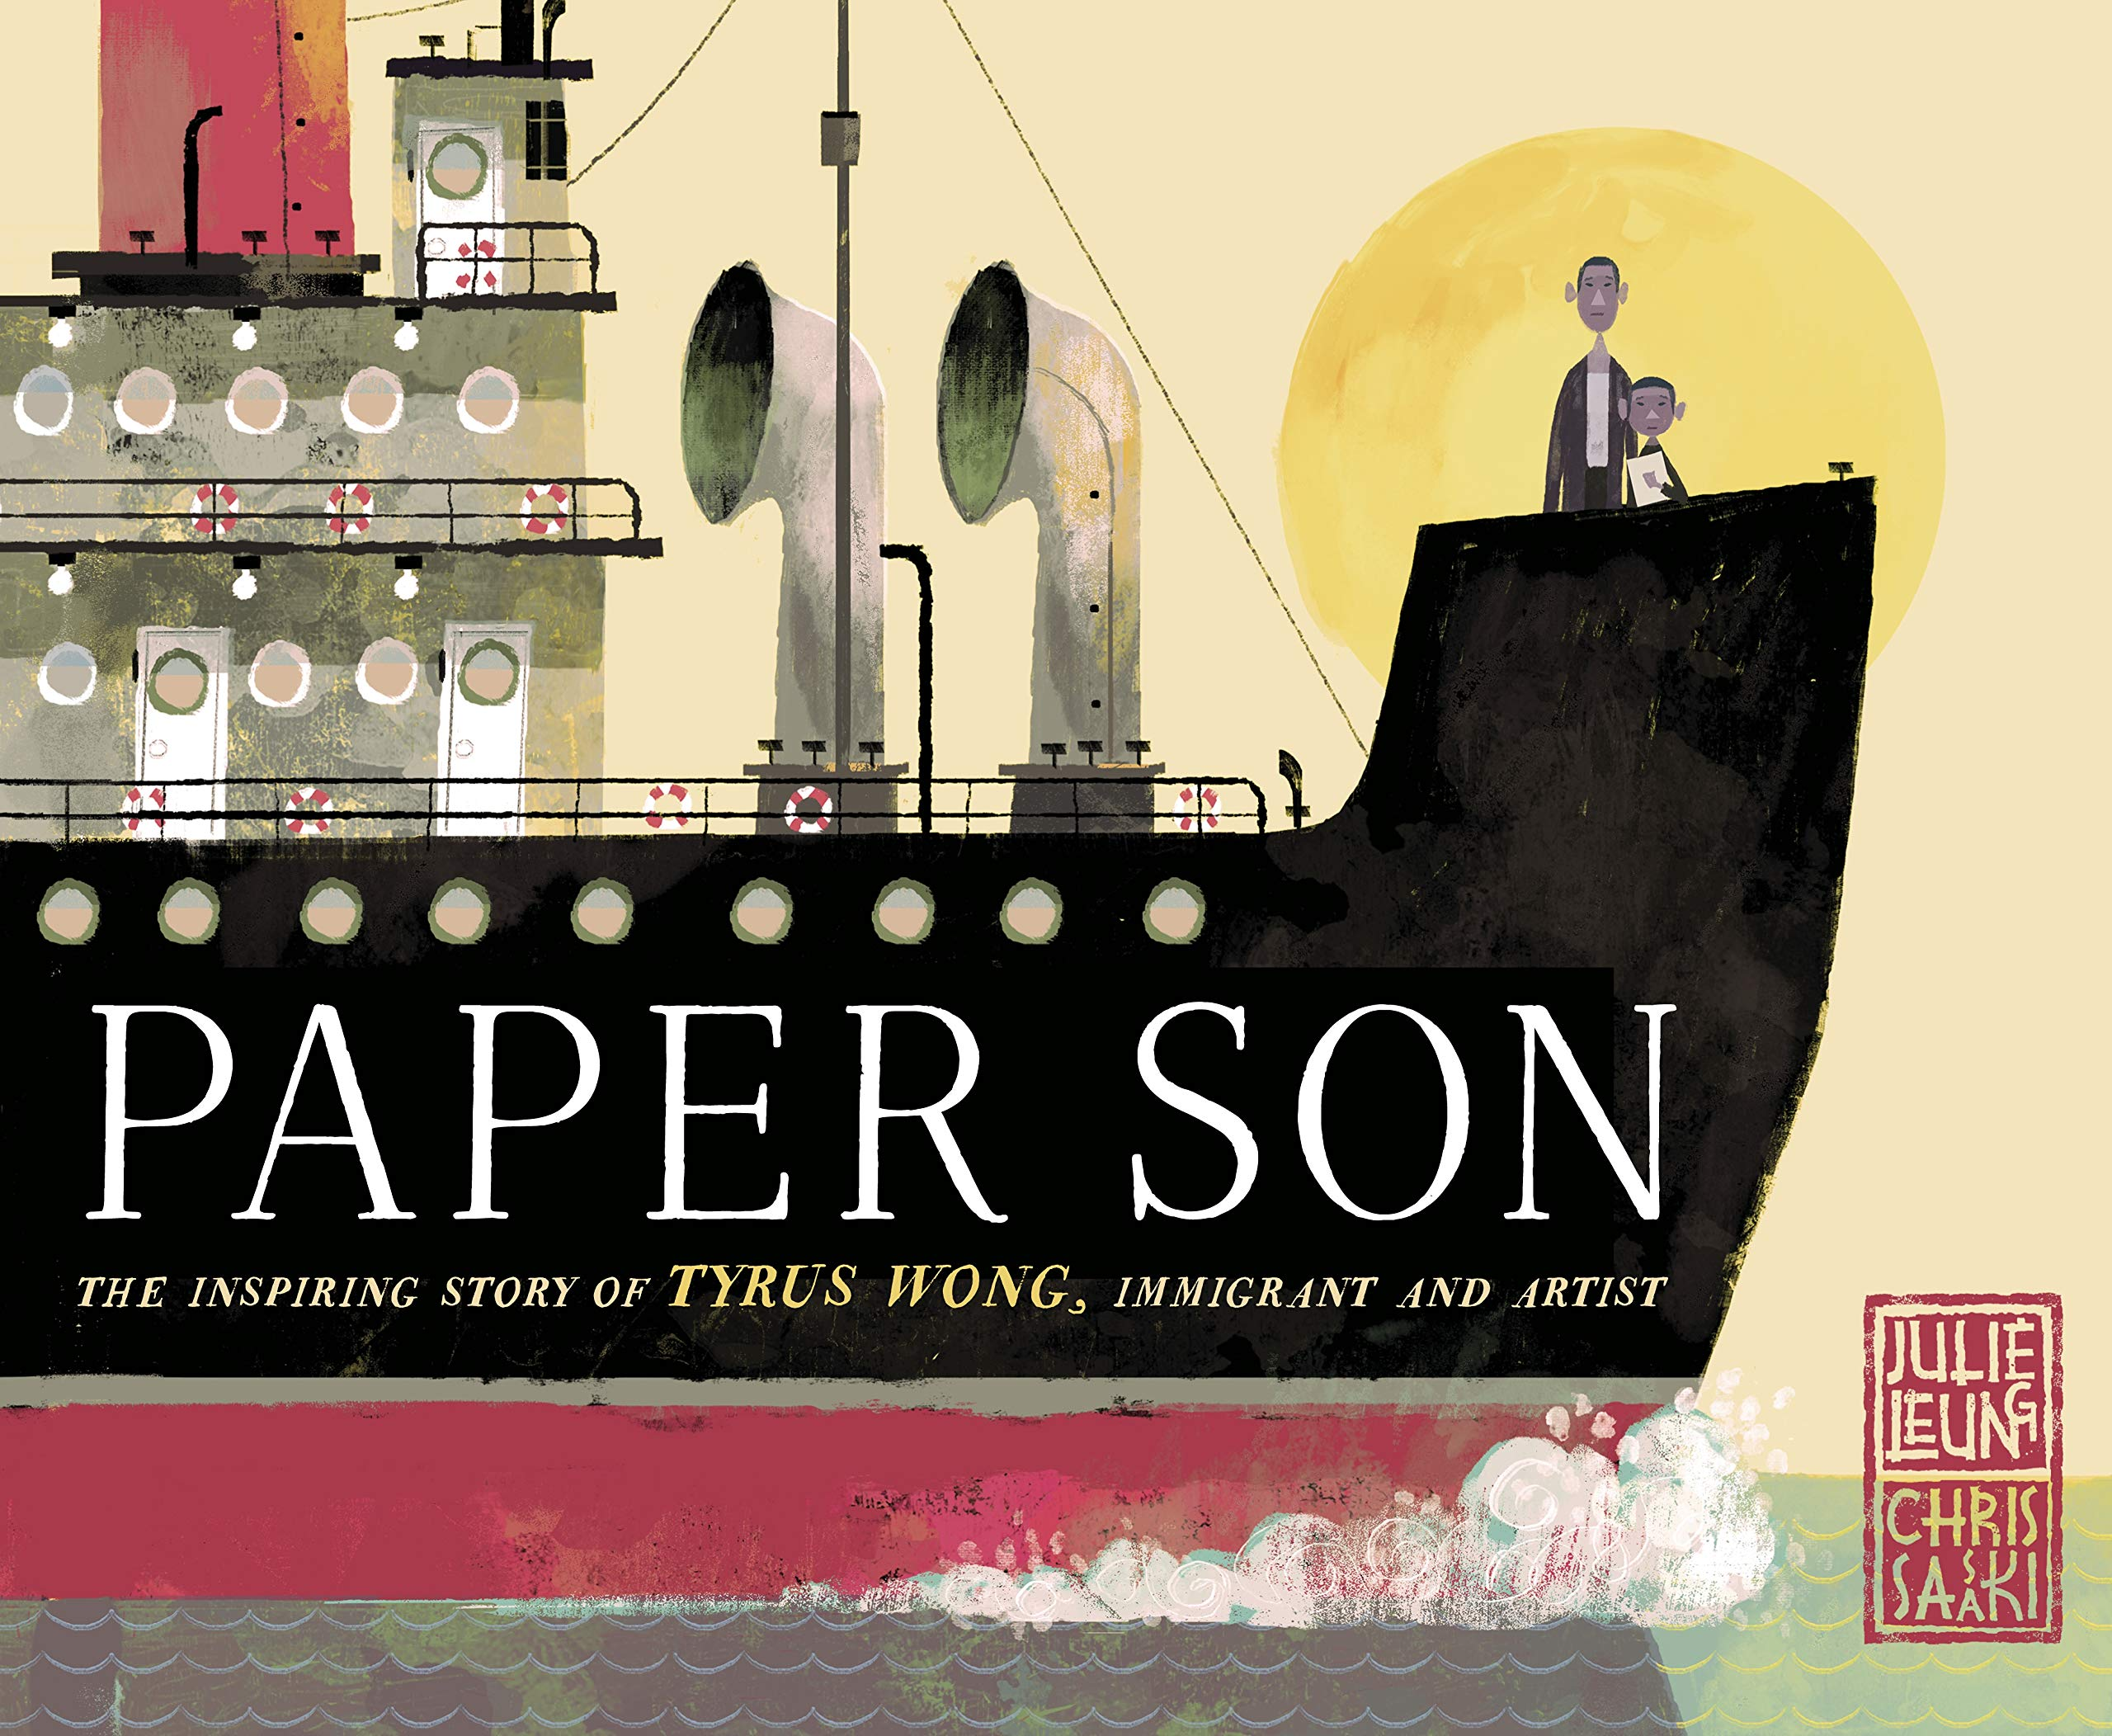 Paper Son by Julie Leung